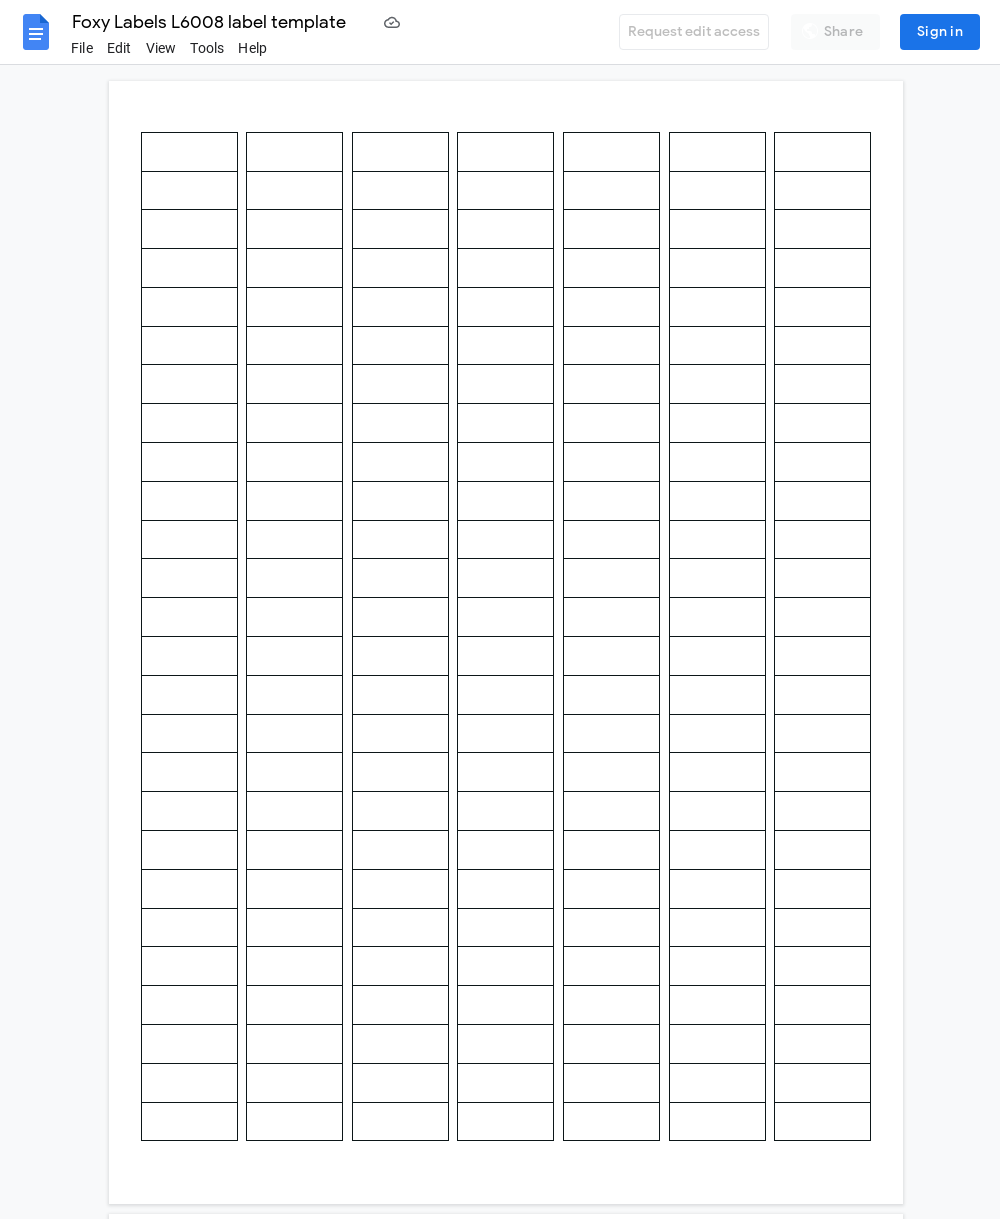 Avery L6008 Label Template